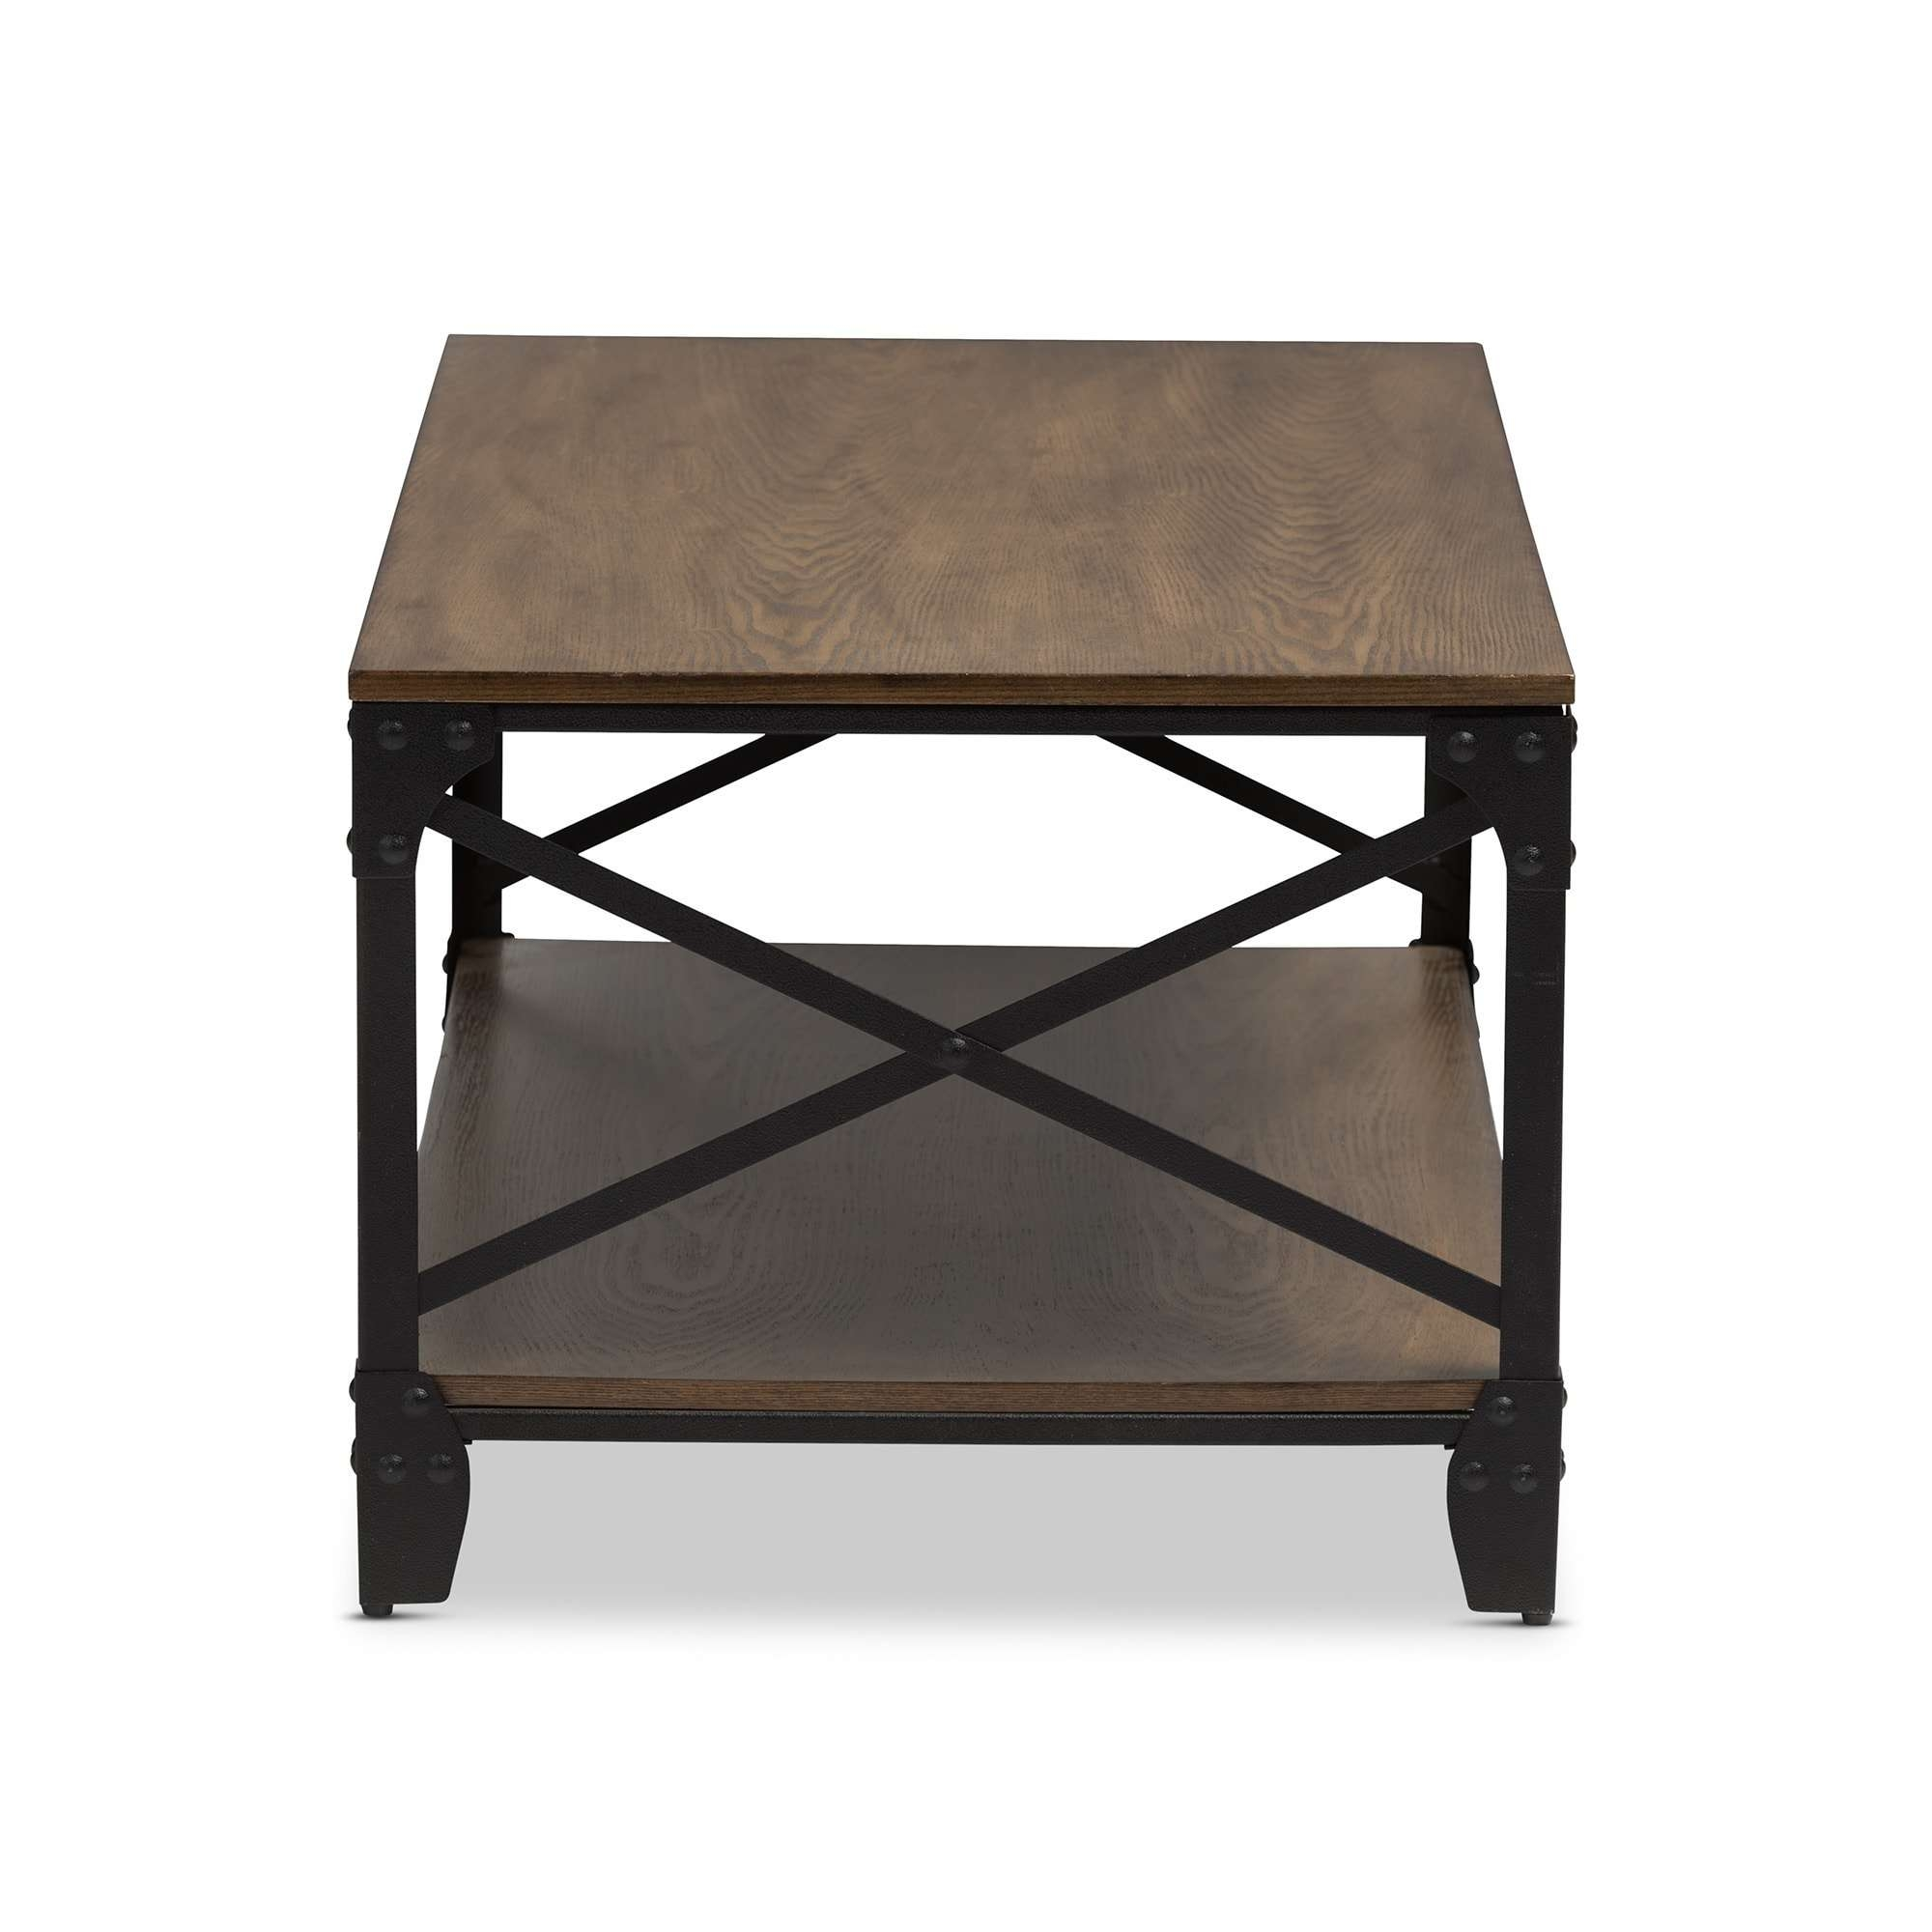 Widely Used Bronze Coffee Tables Inside Baxton Studio Greyson Industrial Bronze Coffee Table – Free (View 20 of 20)